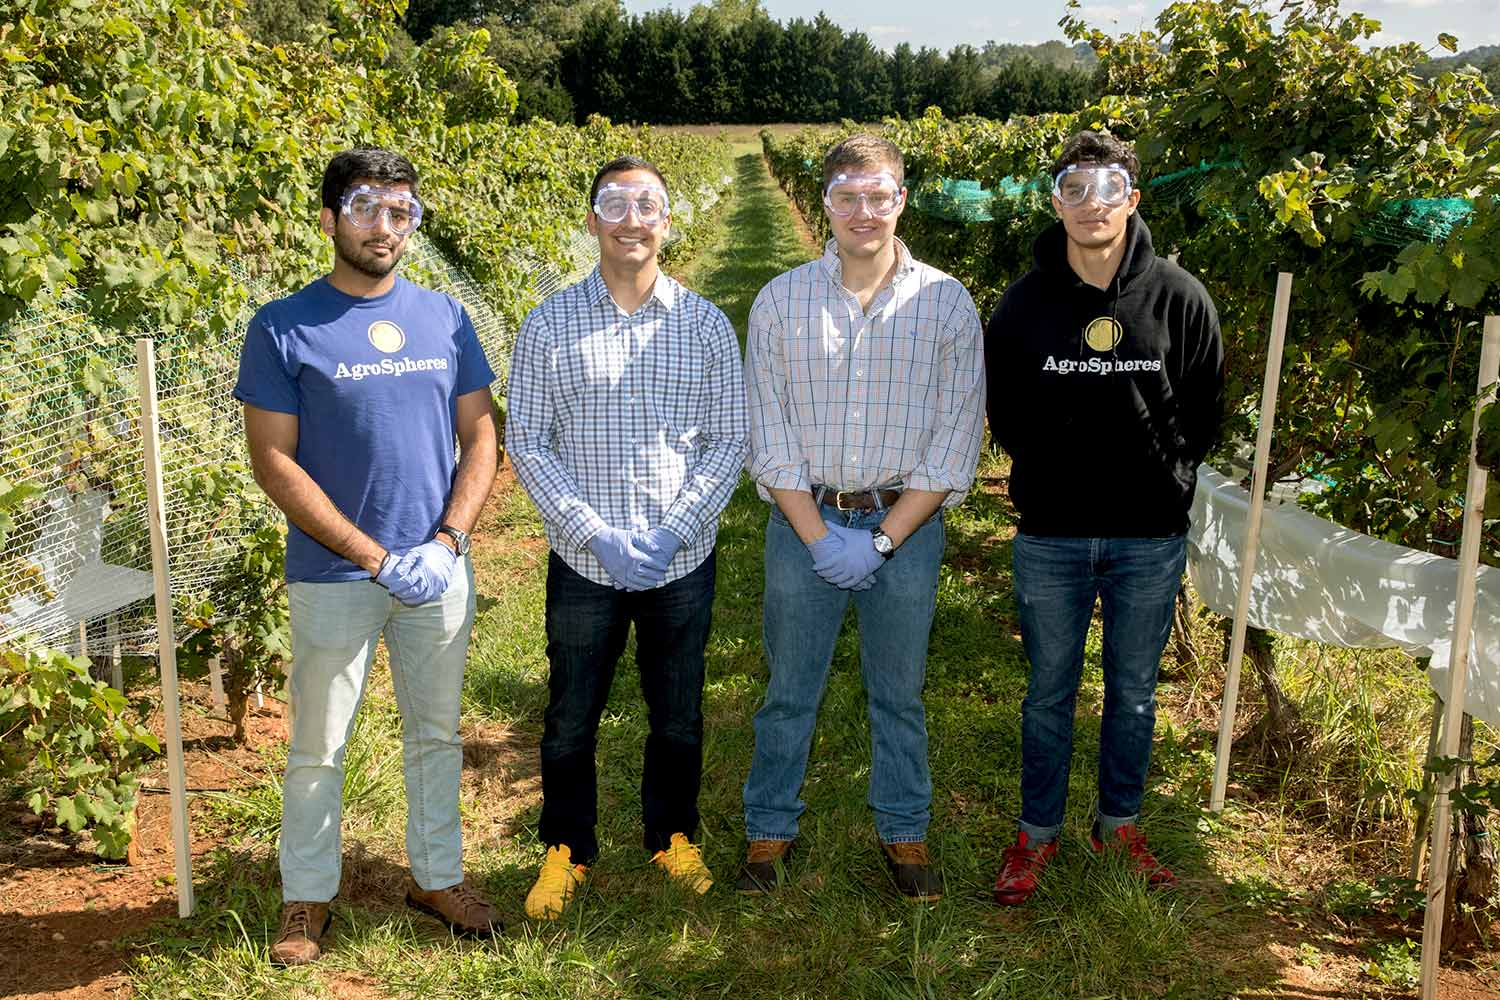 Four members of the Agrospheres team from left to right: Ameer Shakeel, Payam Pourtaheri, Zach Davis and Sepehr Zomorodi.